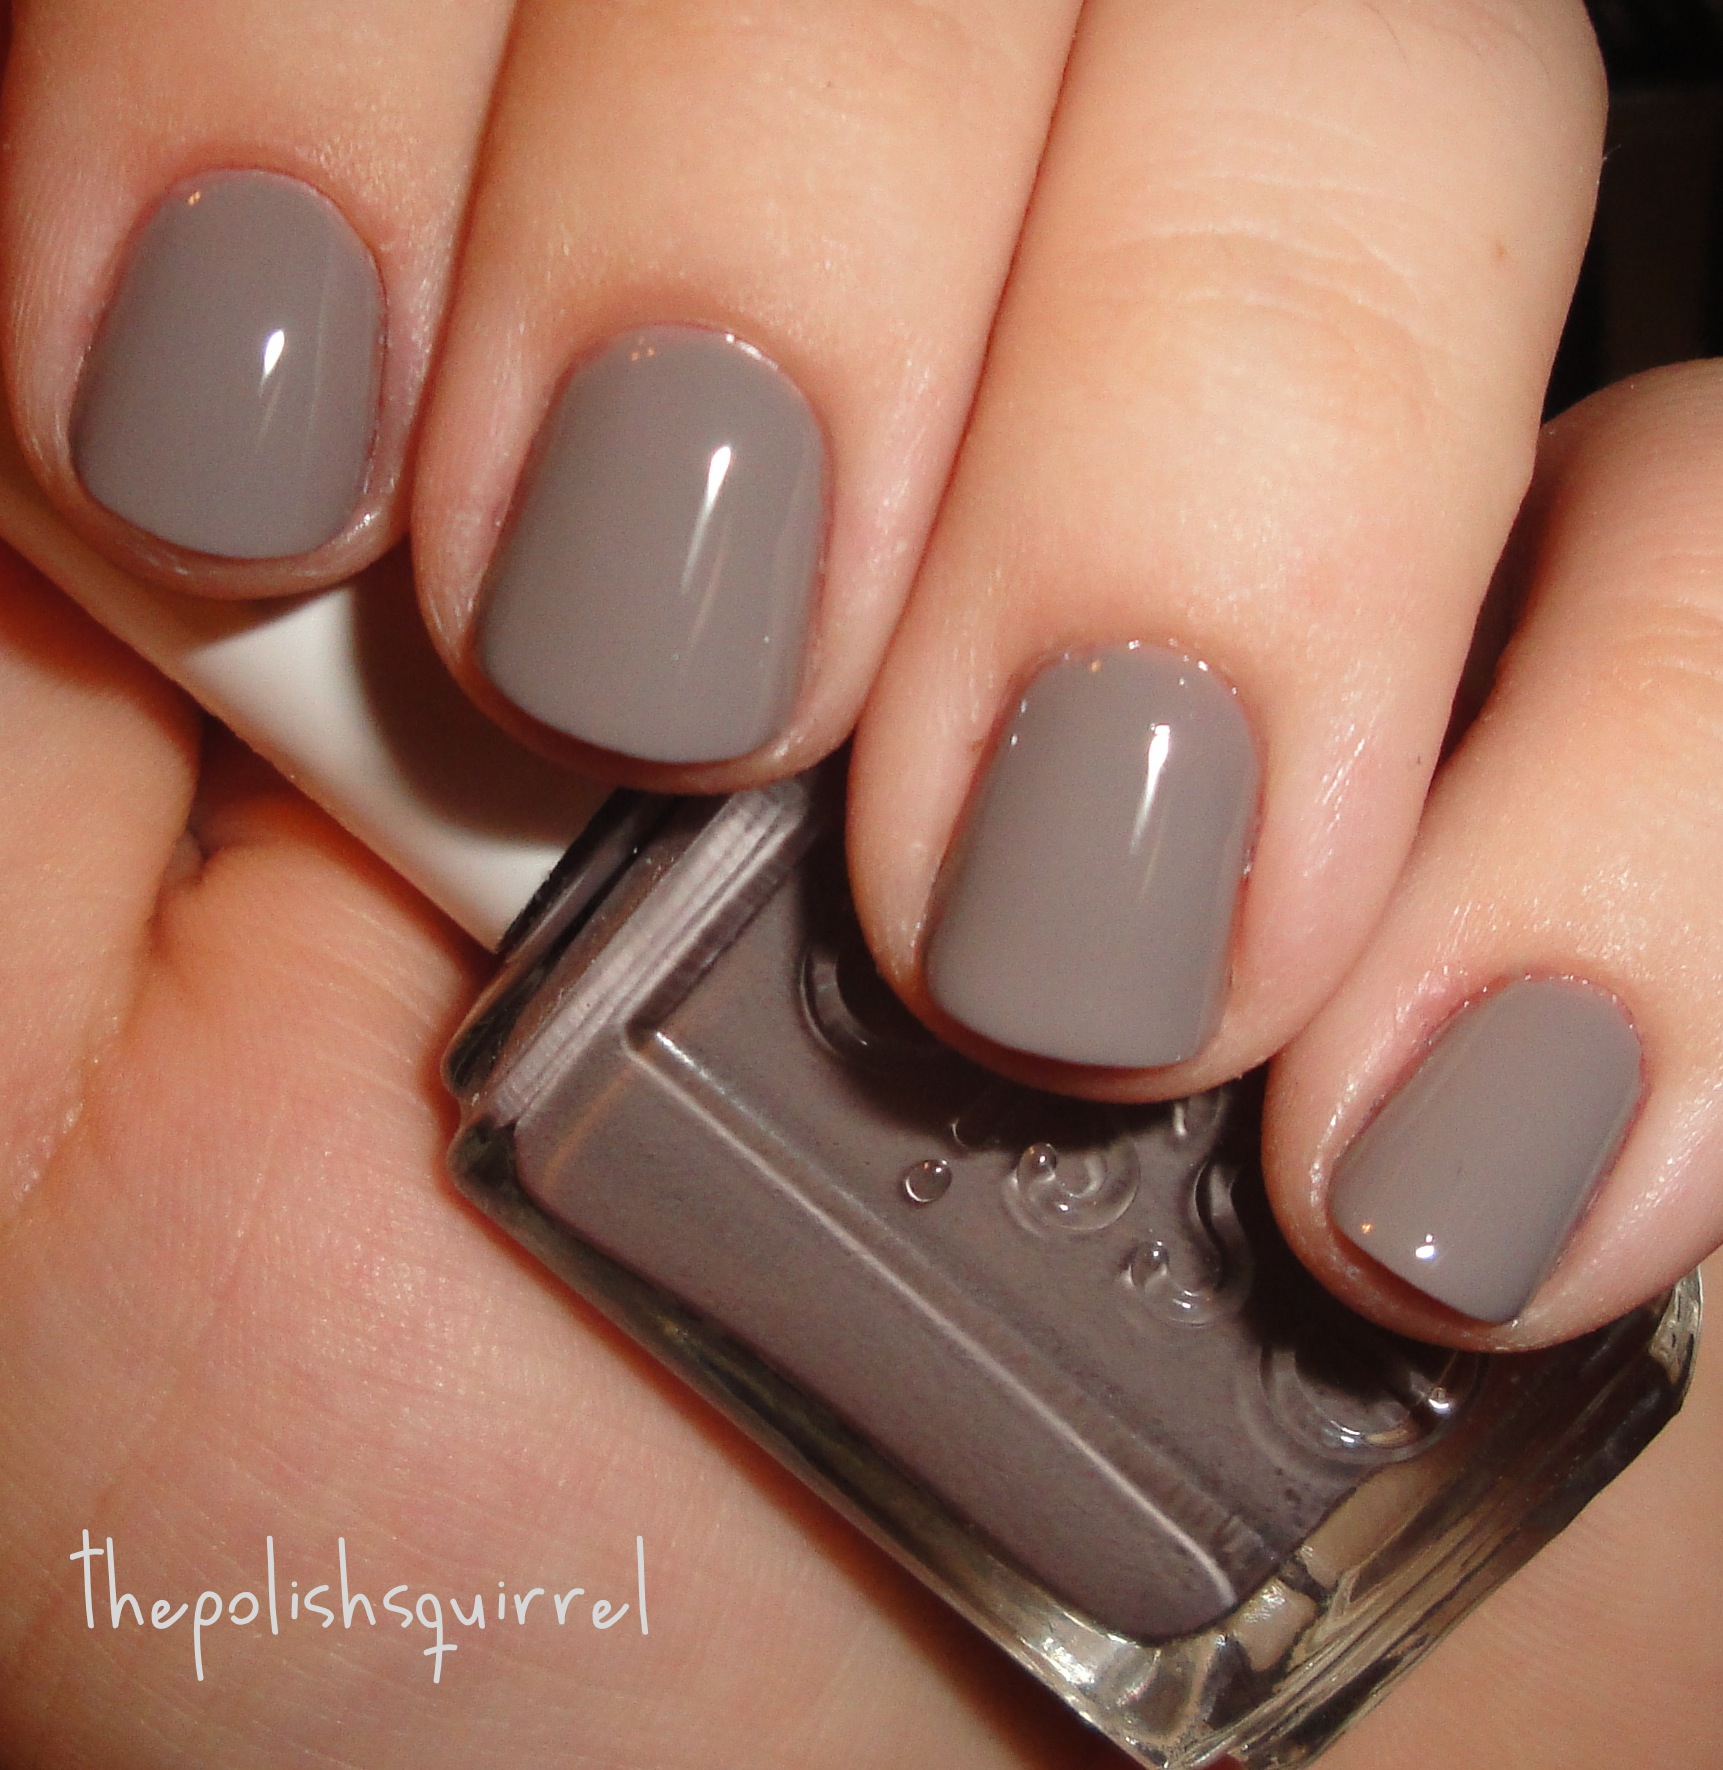 Slate purple nail polish color